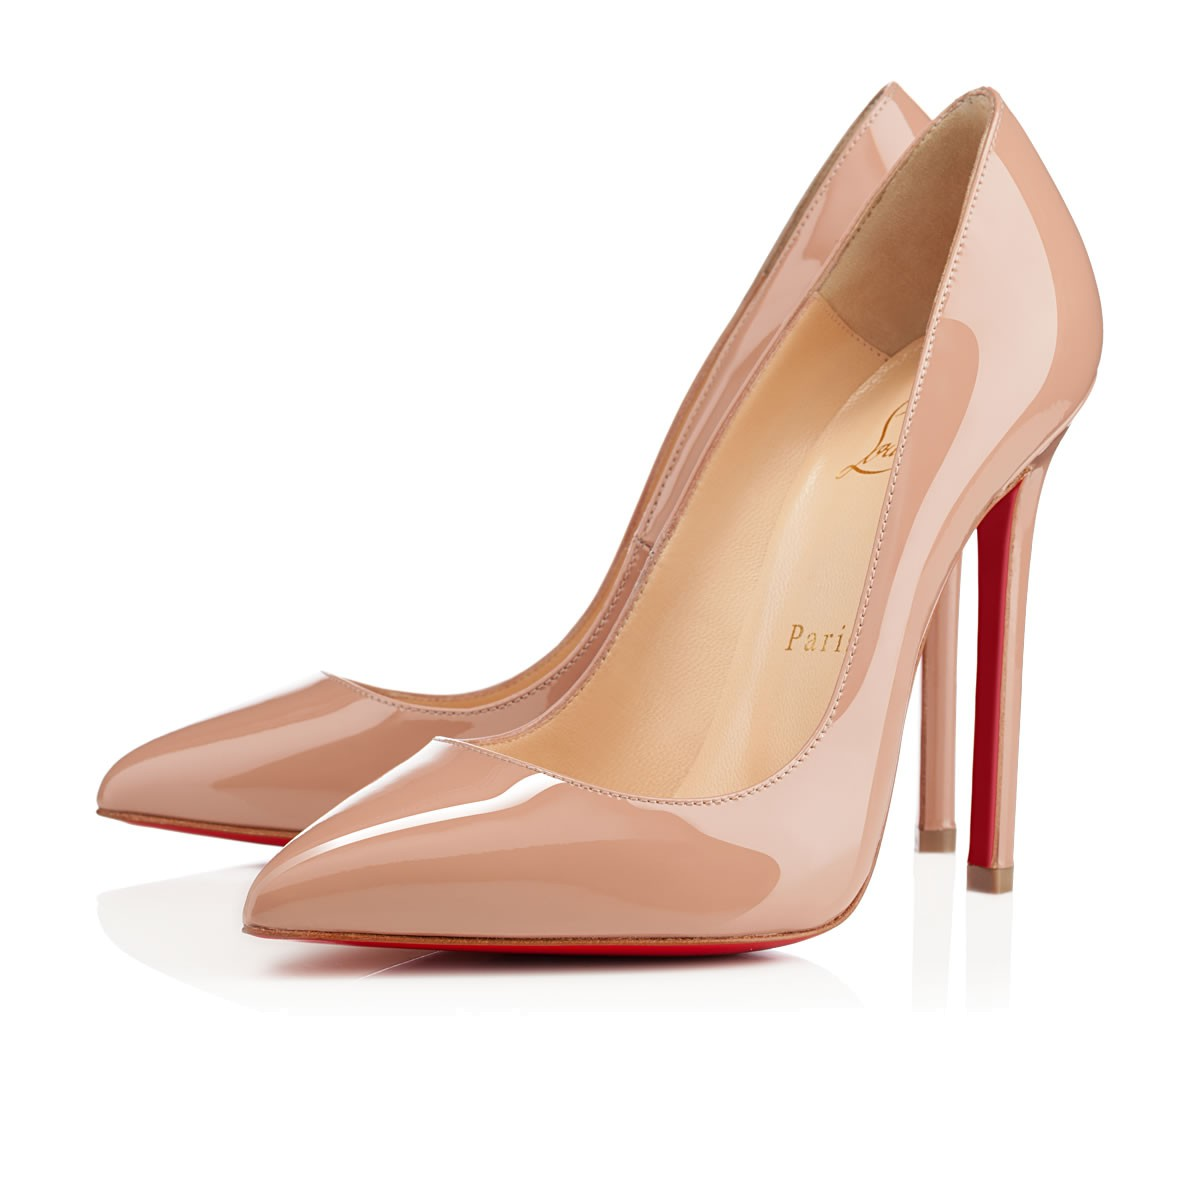 Pigalle Follies 100 Beige Patent Leather Pump, Nude